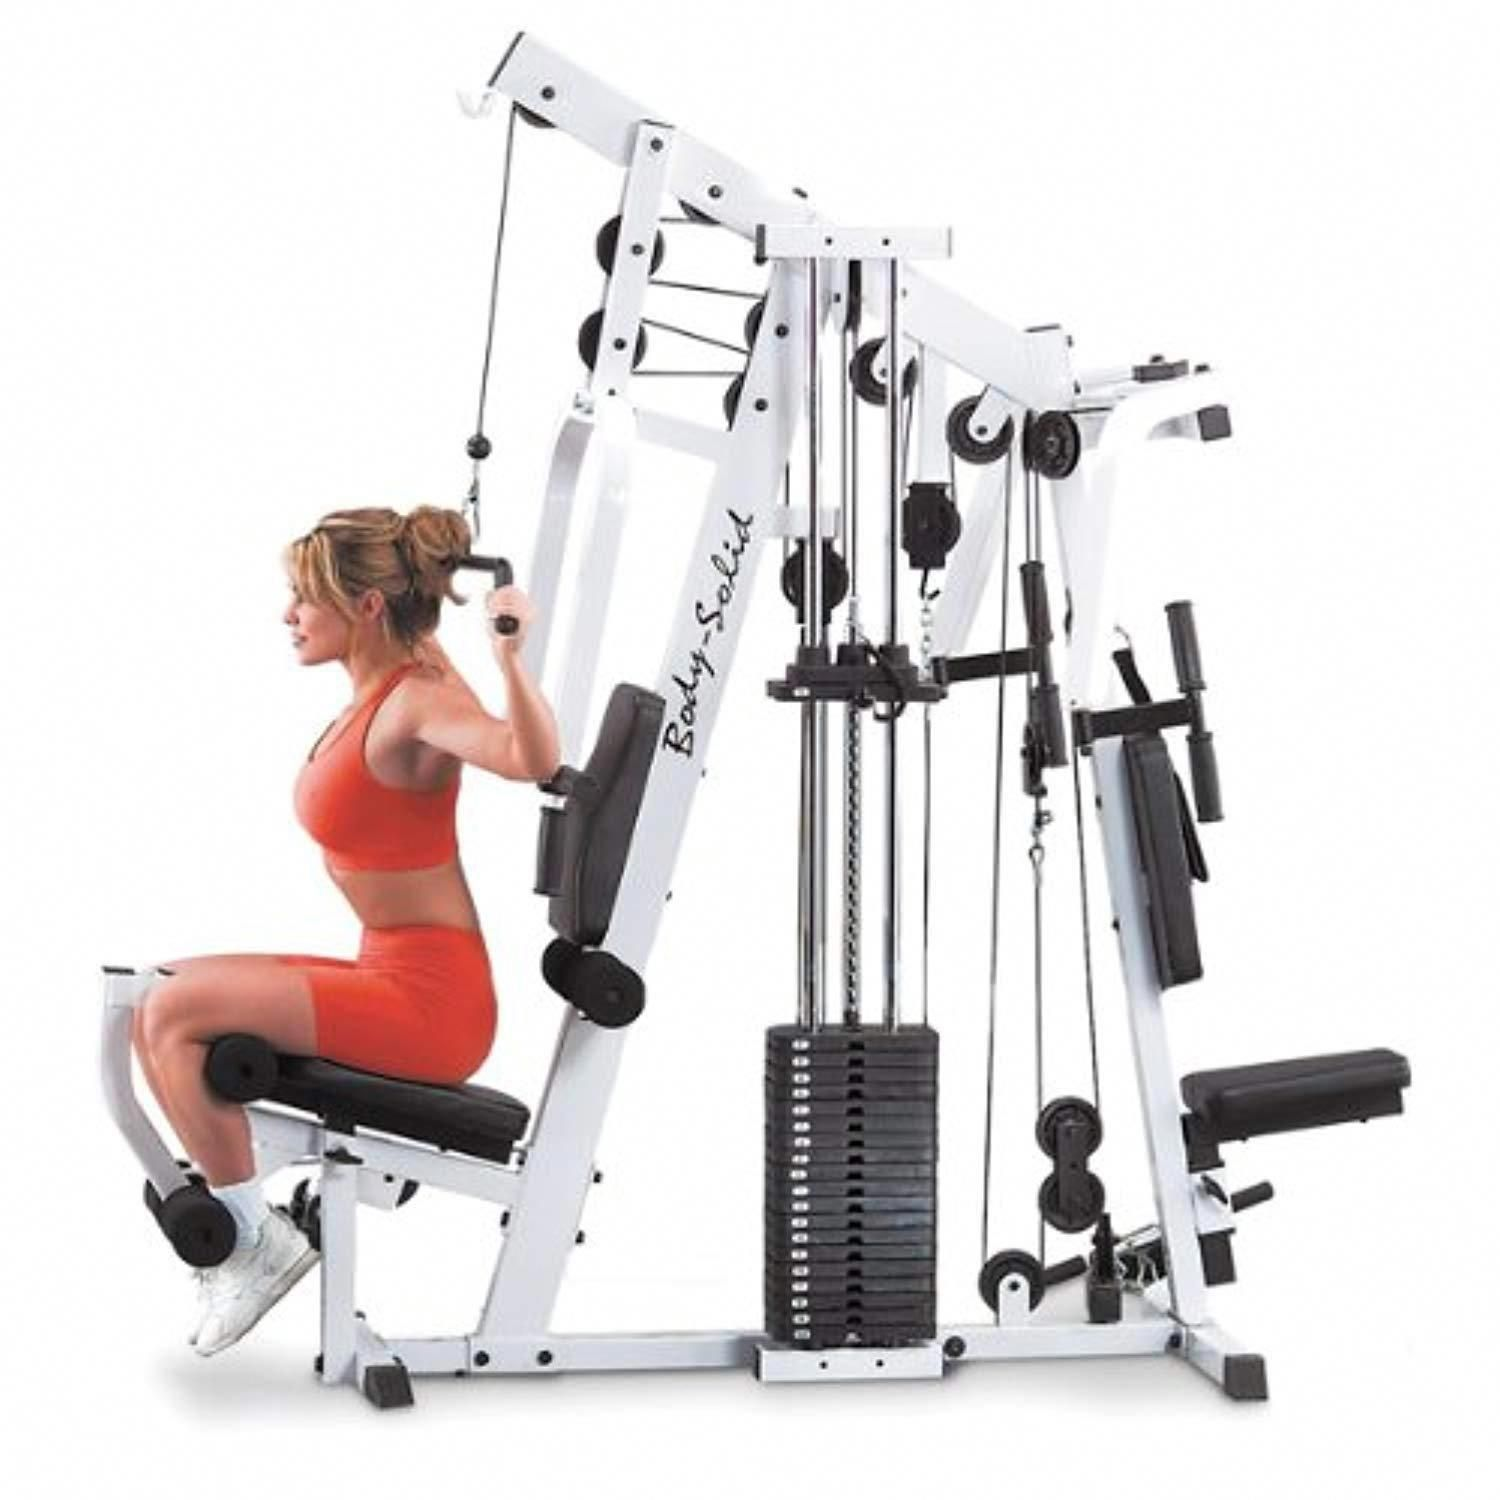 c1909624958 210 lb Selectorized Iron Weight Stack in 10l Home Gym  homeexerciseequipment